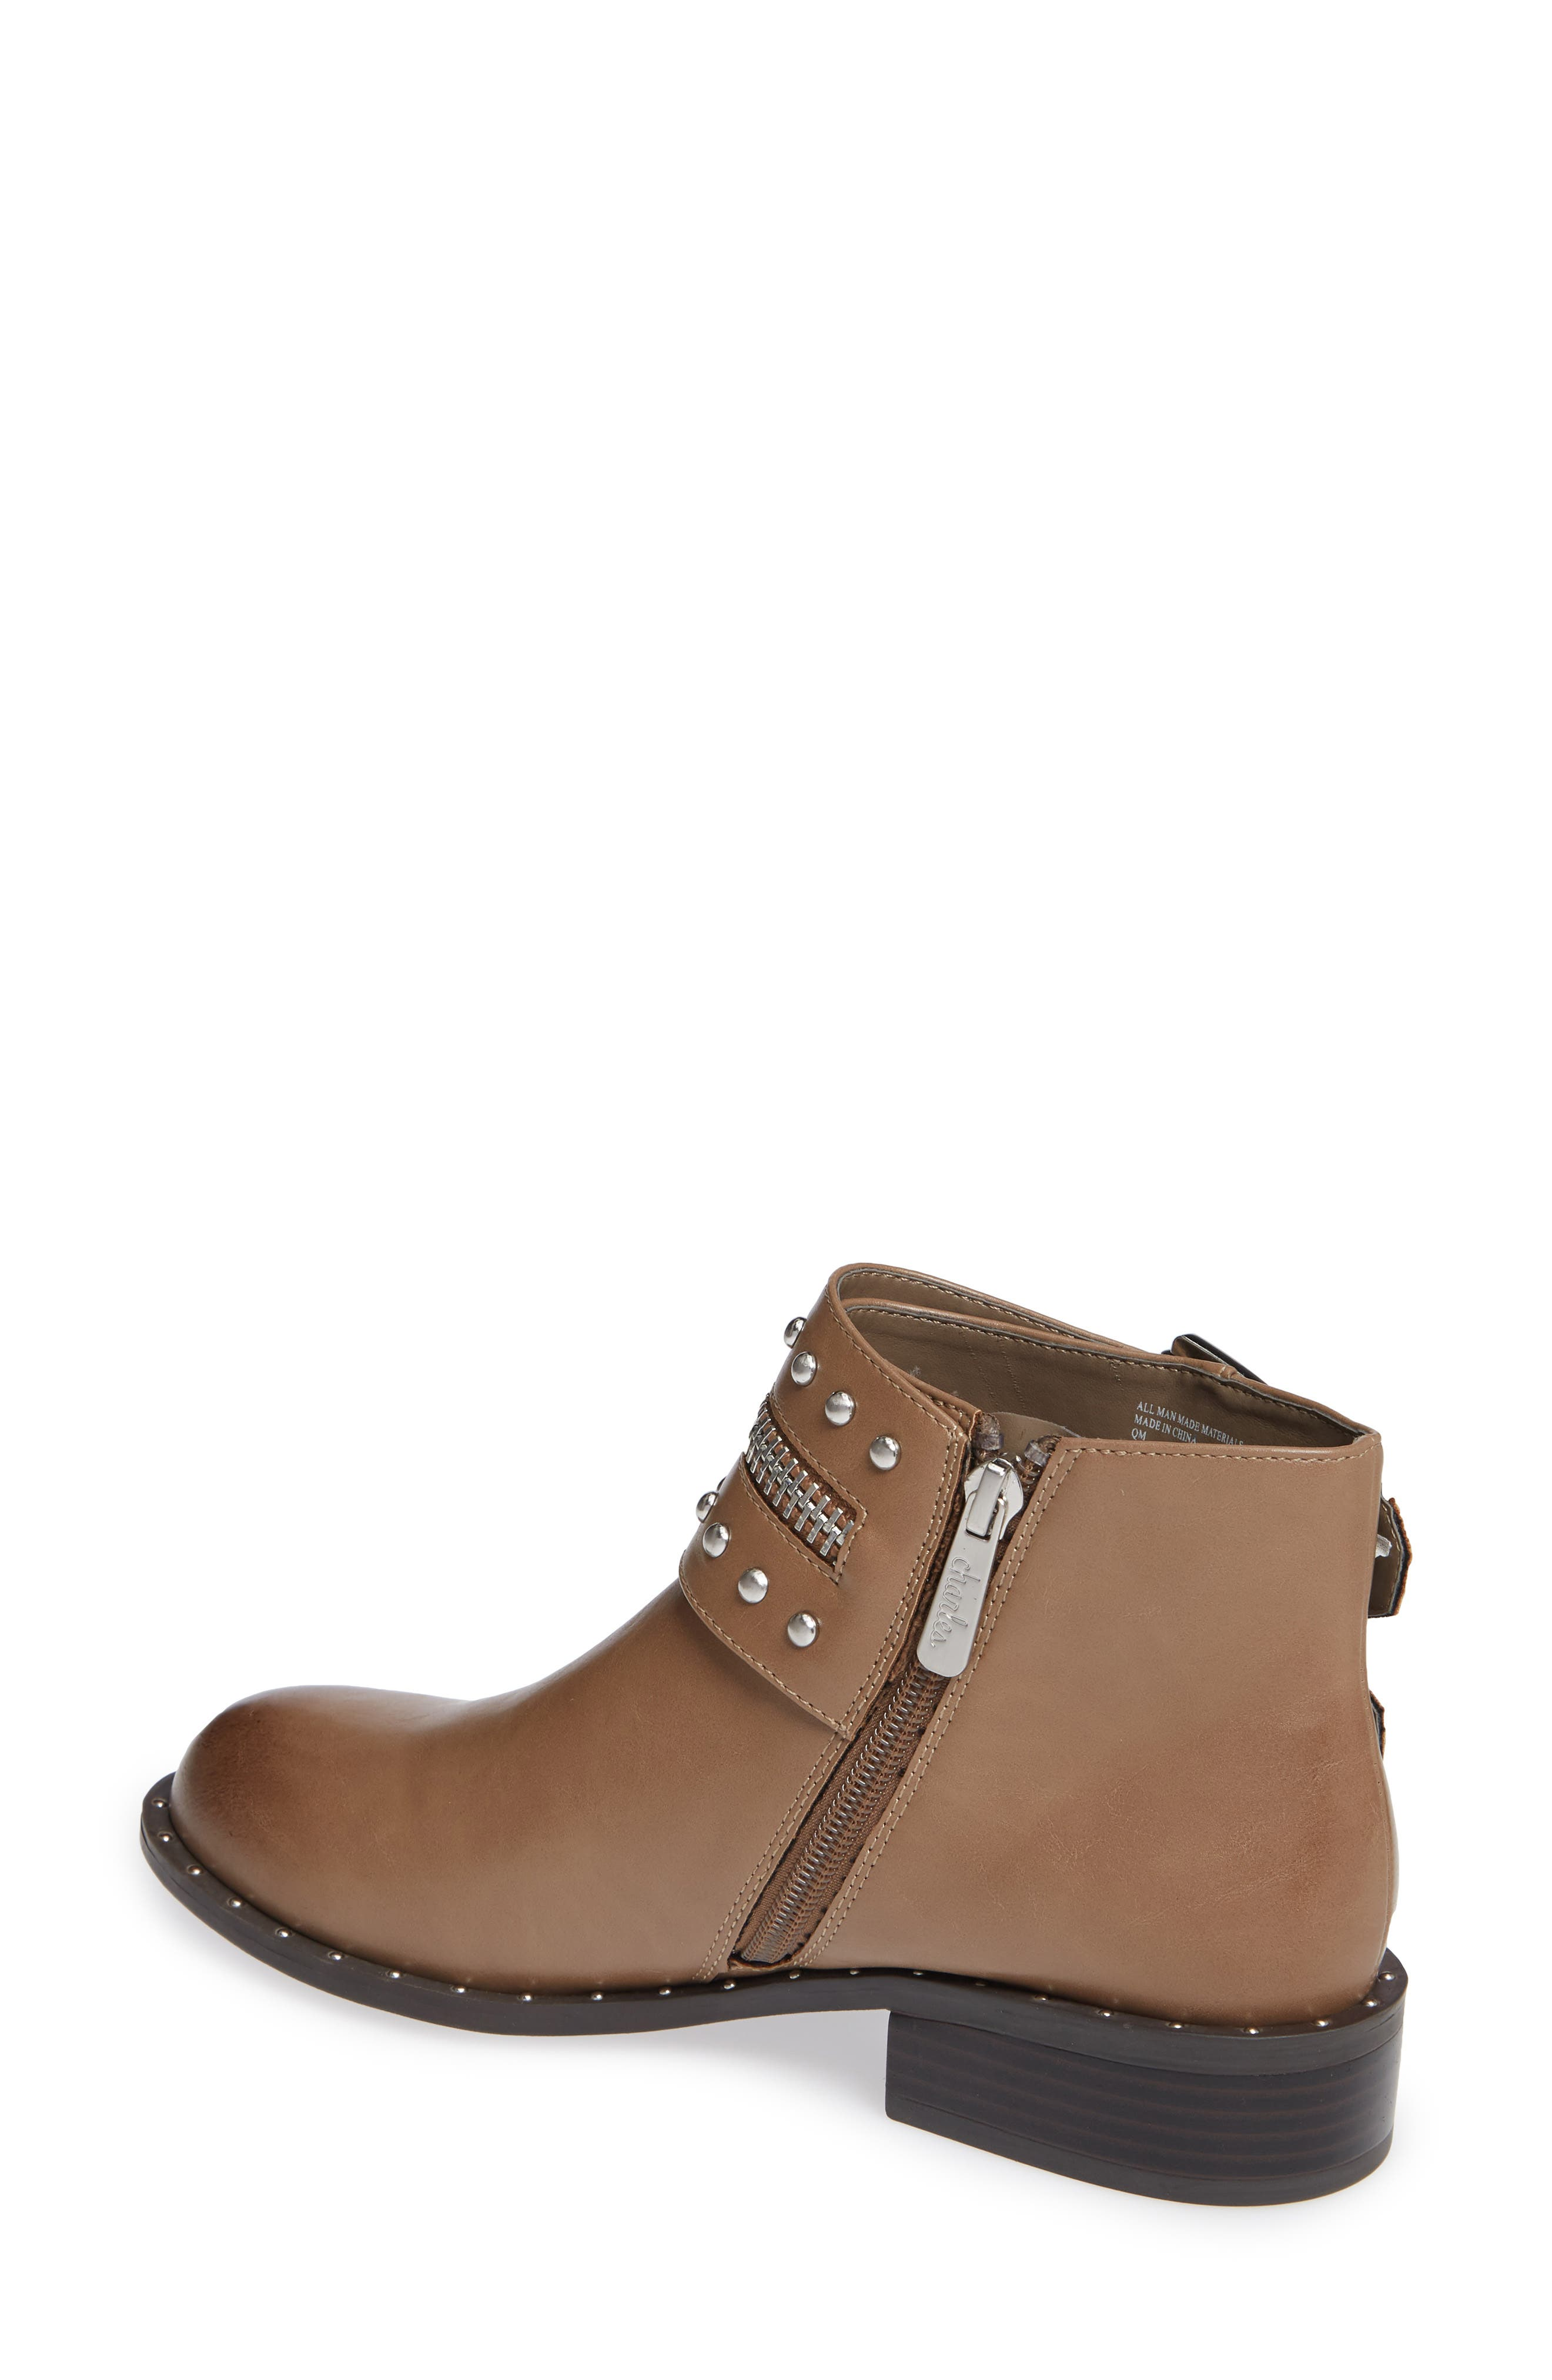 CHARLES BY CHARLES DAVID, Thief Studded Bootie, Alternate thumbnail 2, color, TAUPE SYNTHETIC